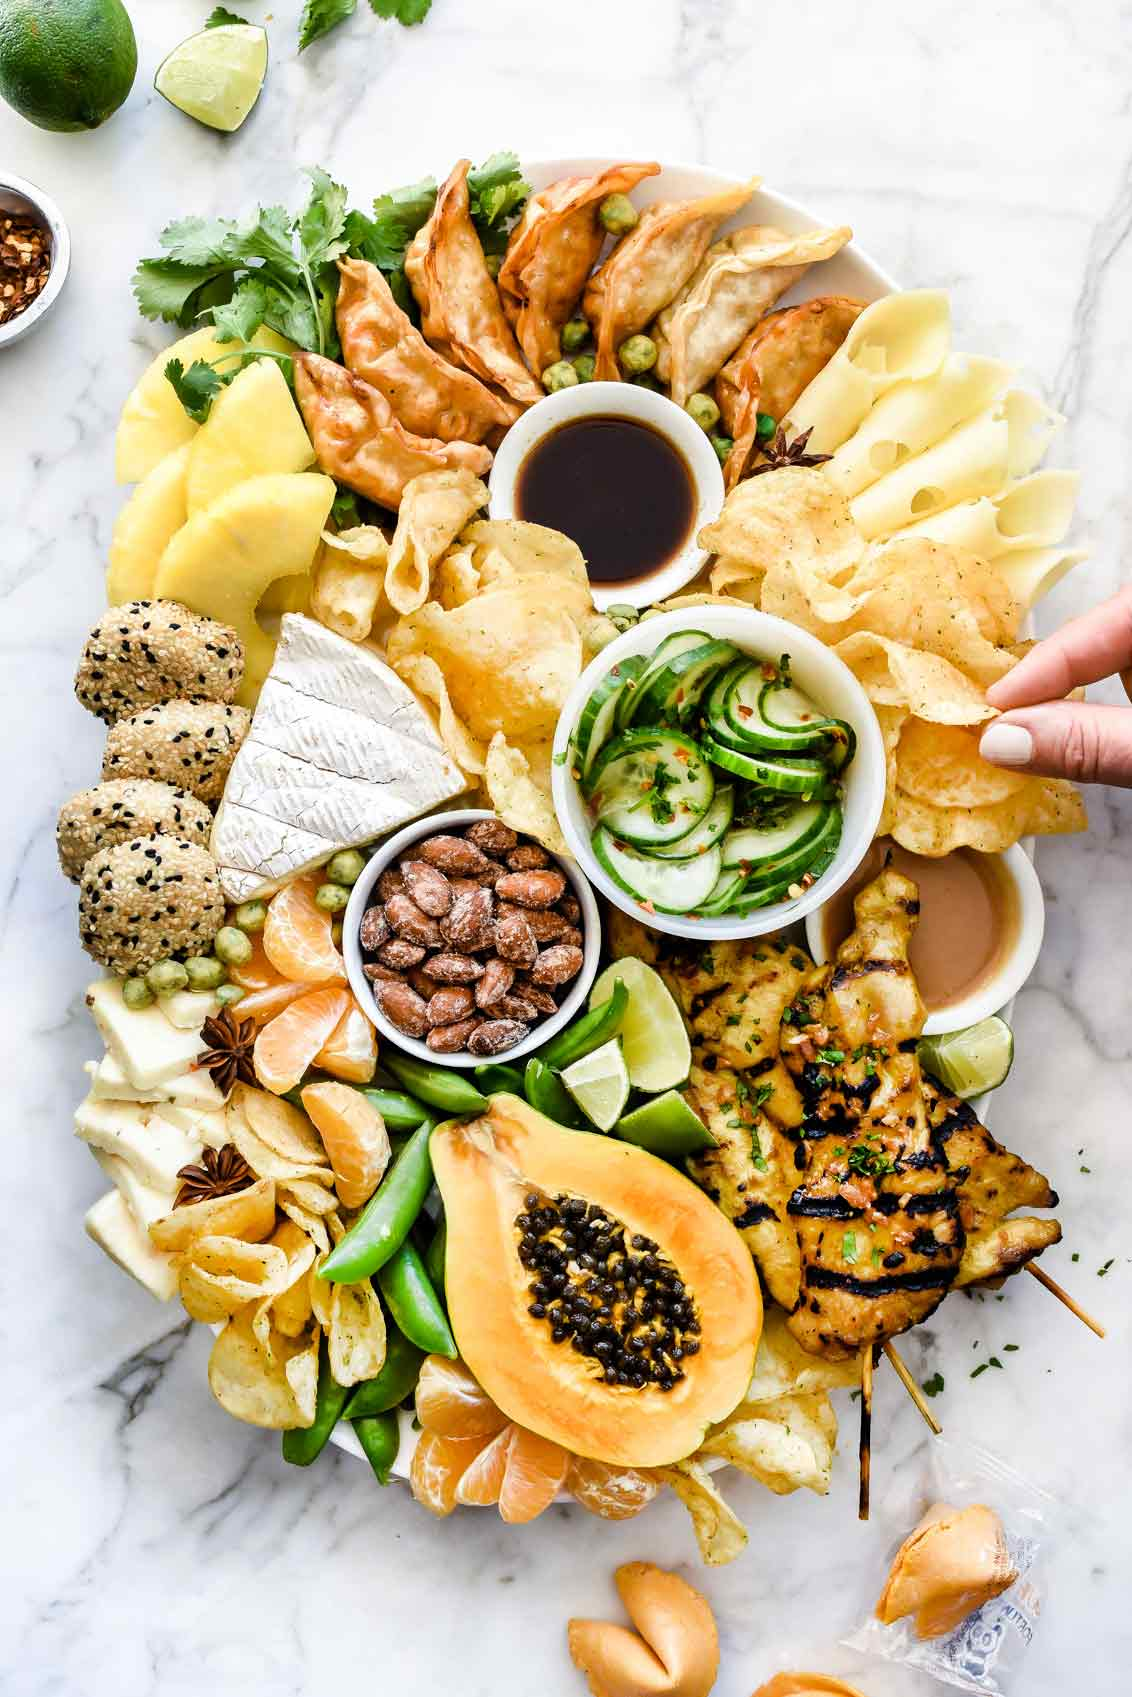 Perfect Asian Food Platter Ideas